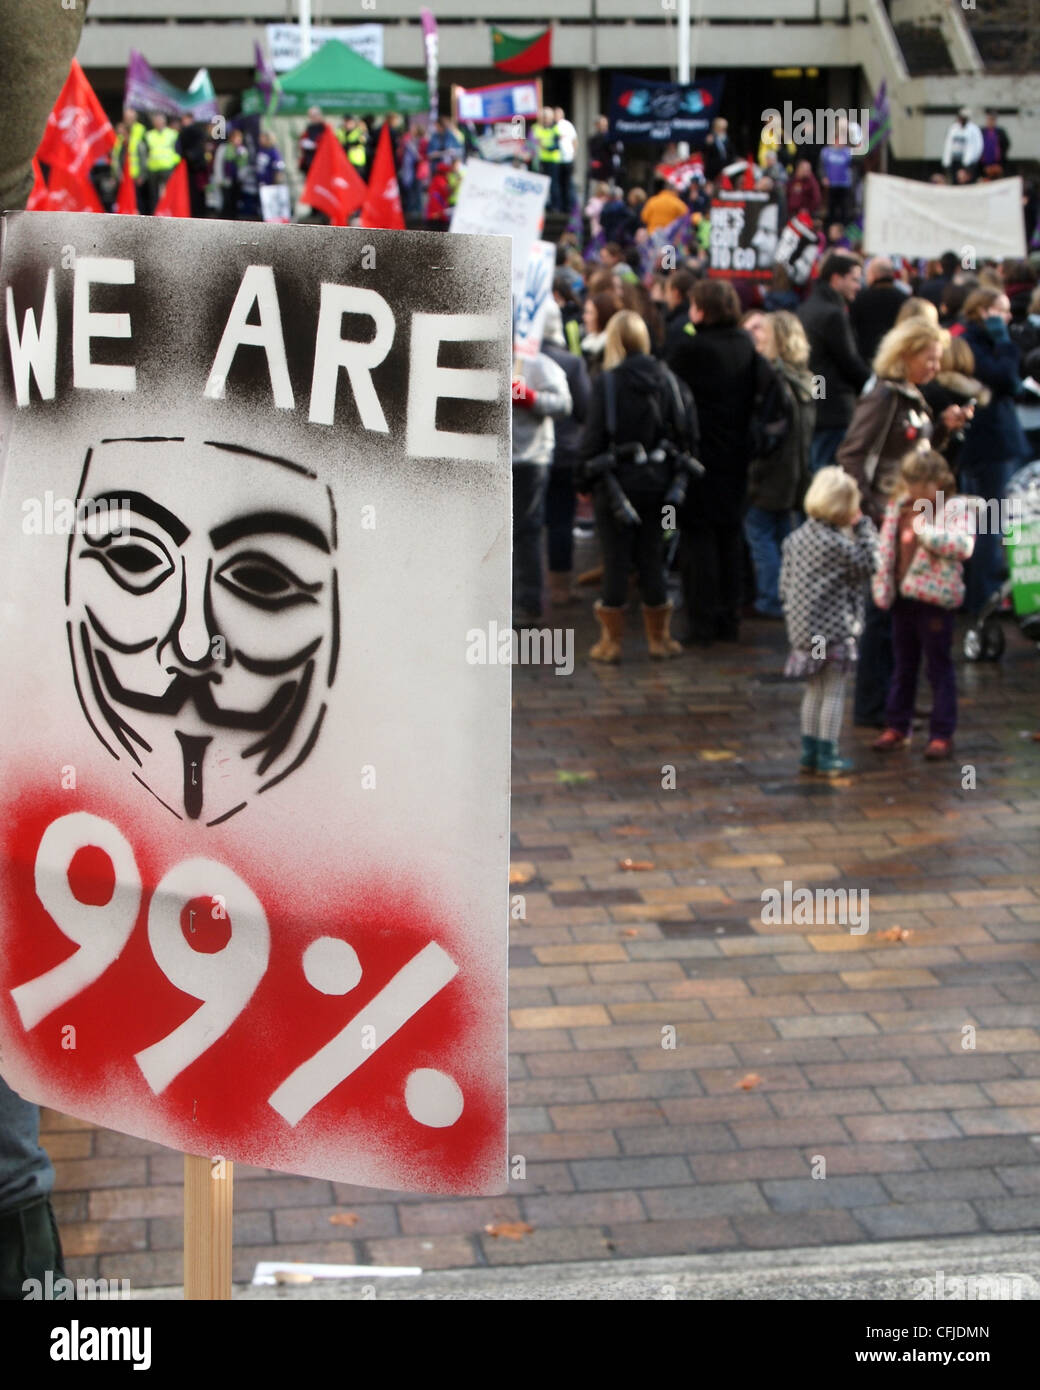 we-are-99-placard-with-the-guy-fawkes-mask-symbol-and-protesters-in-CFJDMN.jpg